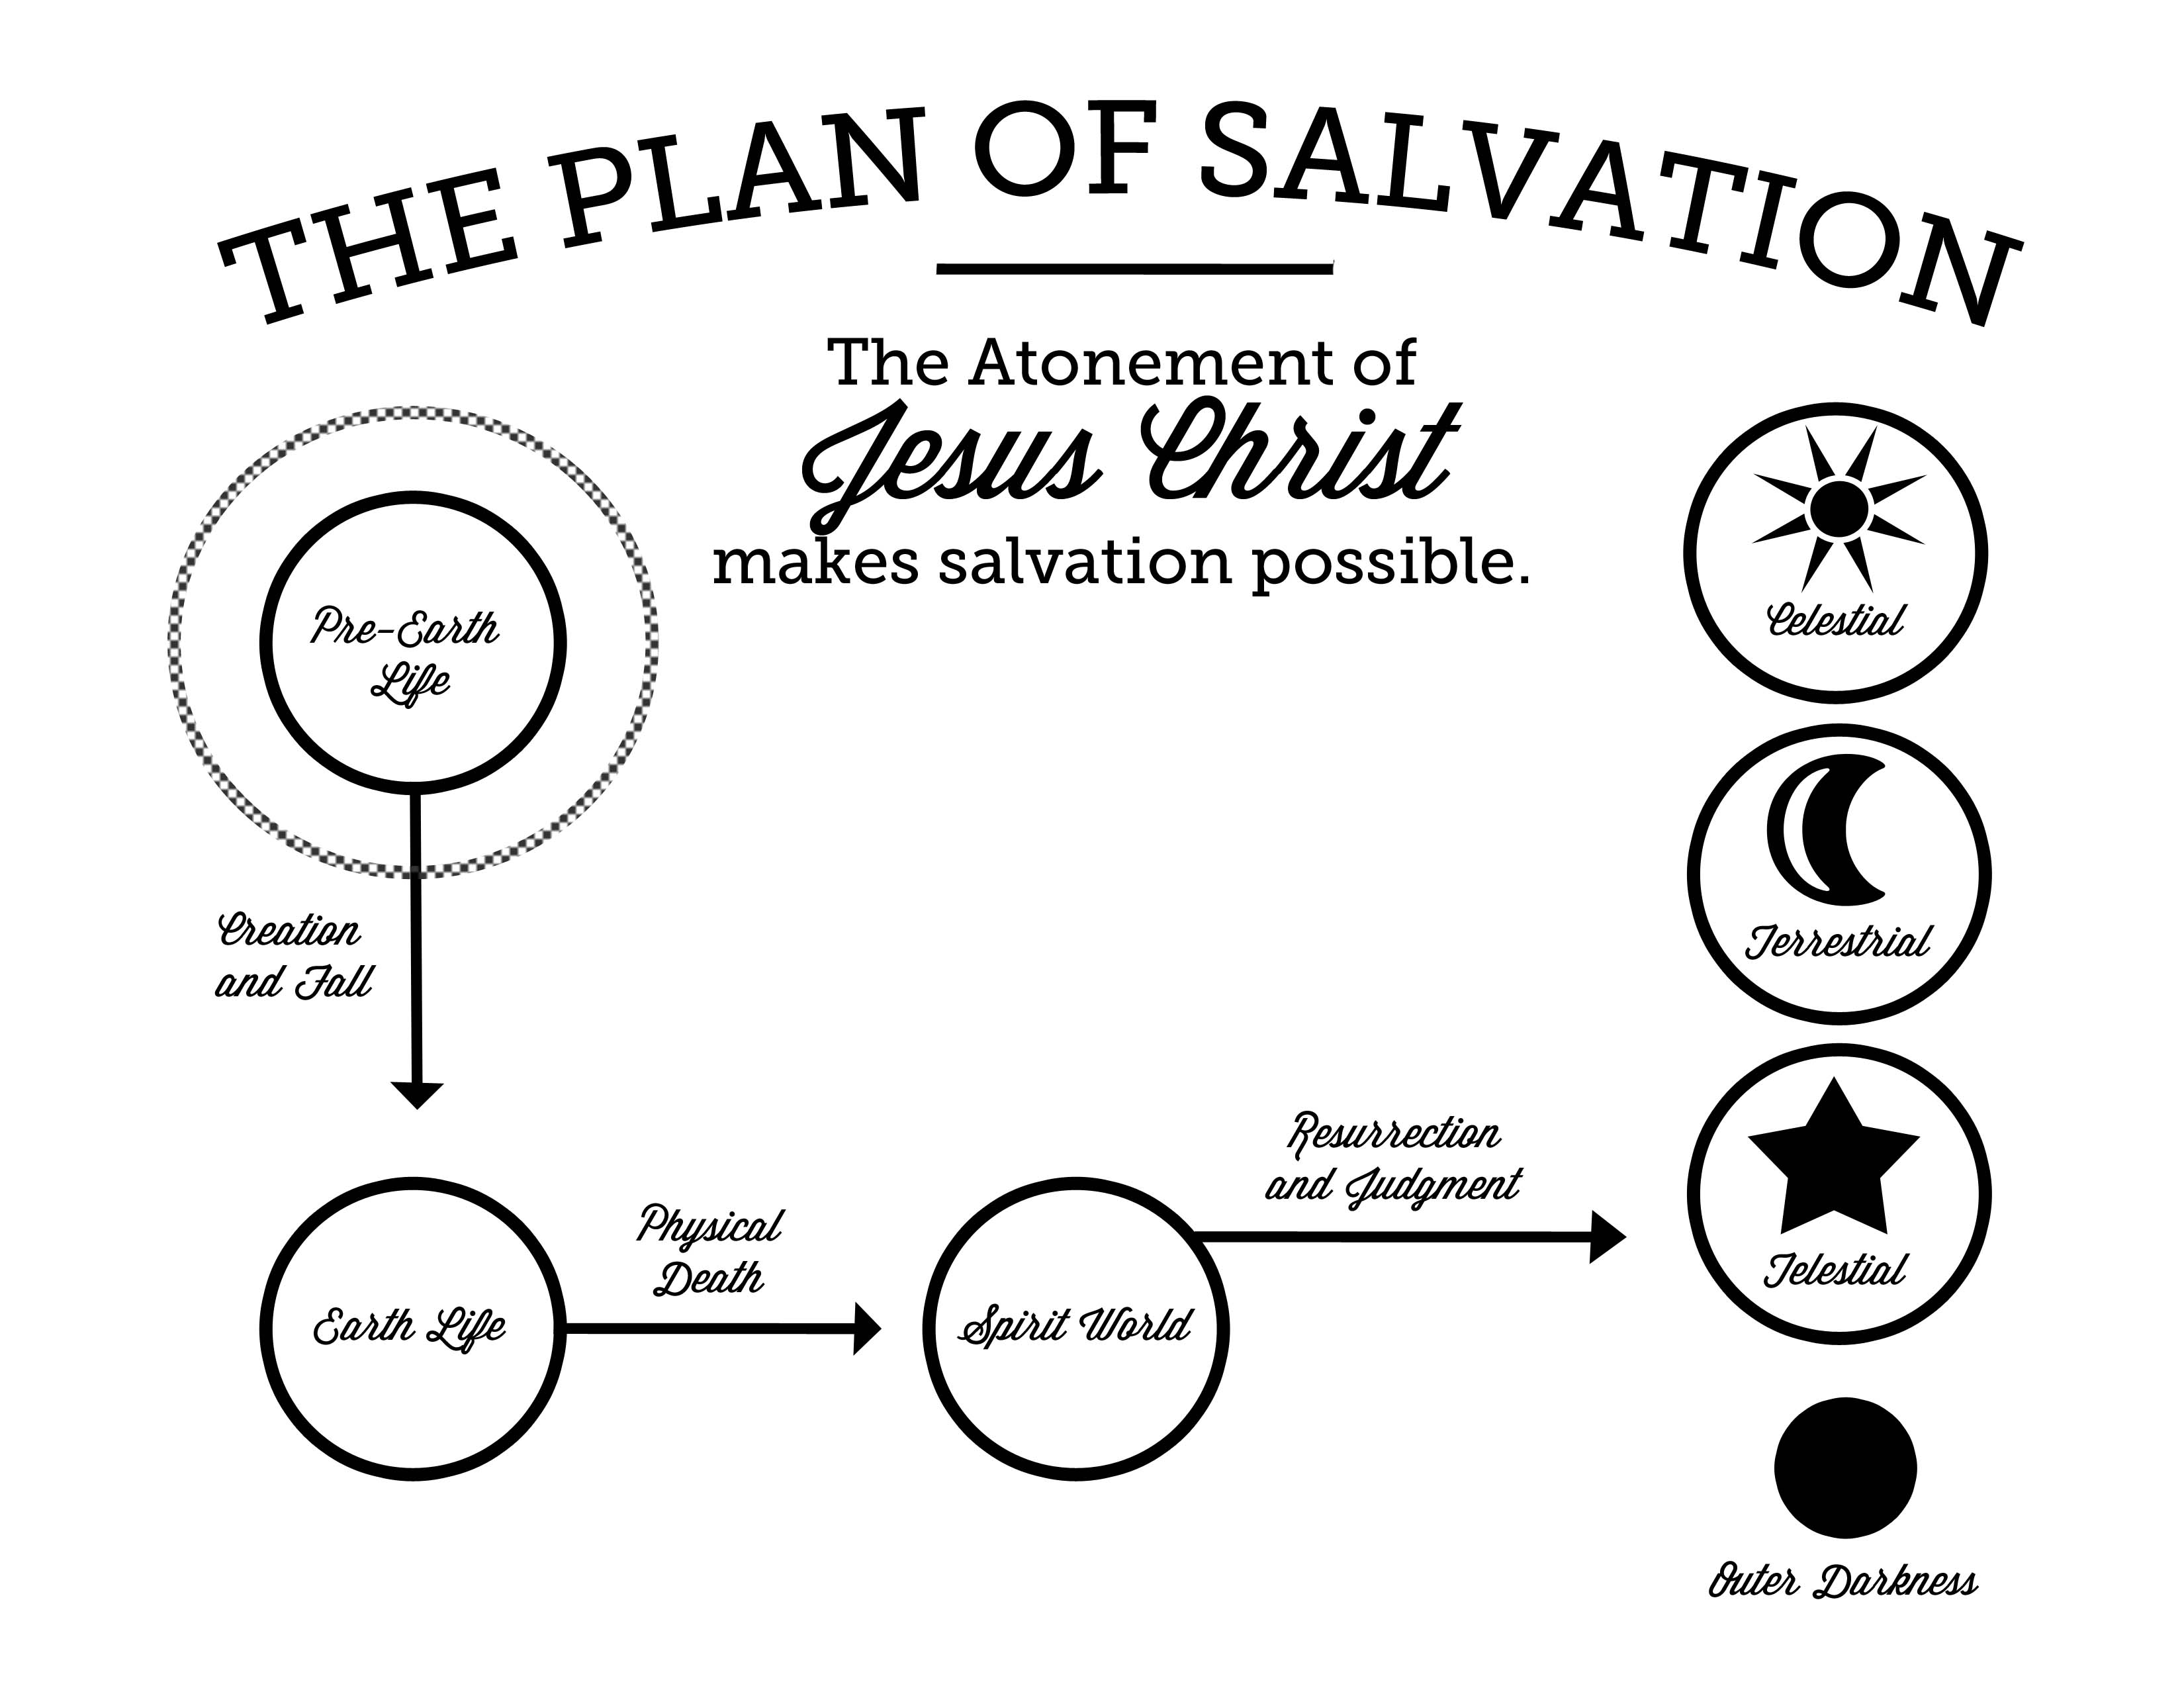 Lds plan of salvation quotes quotesgram for Lds plan of salvation coloring page